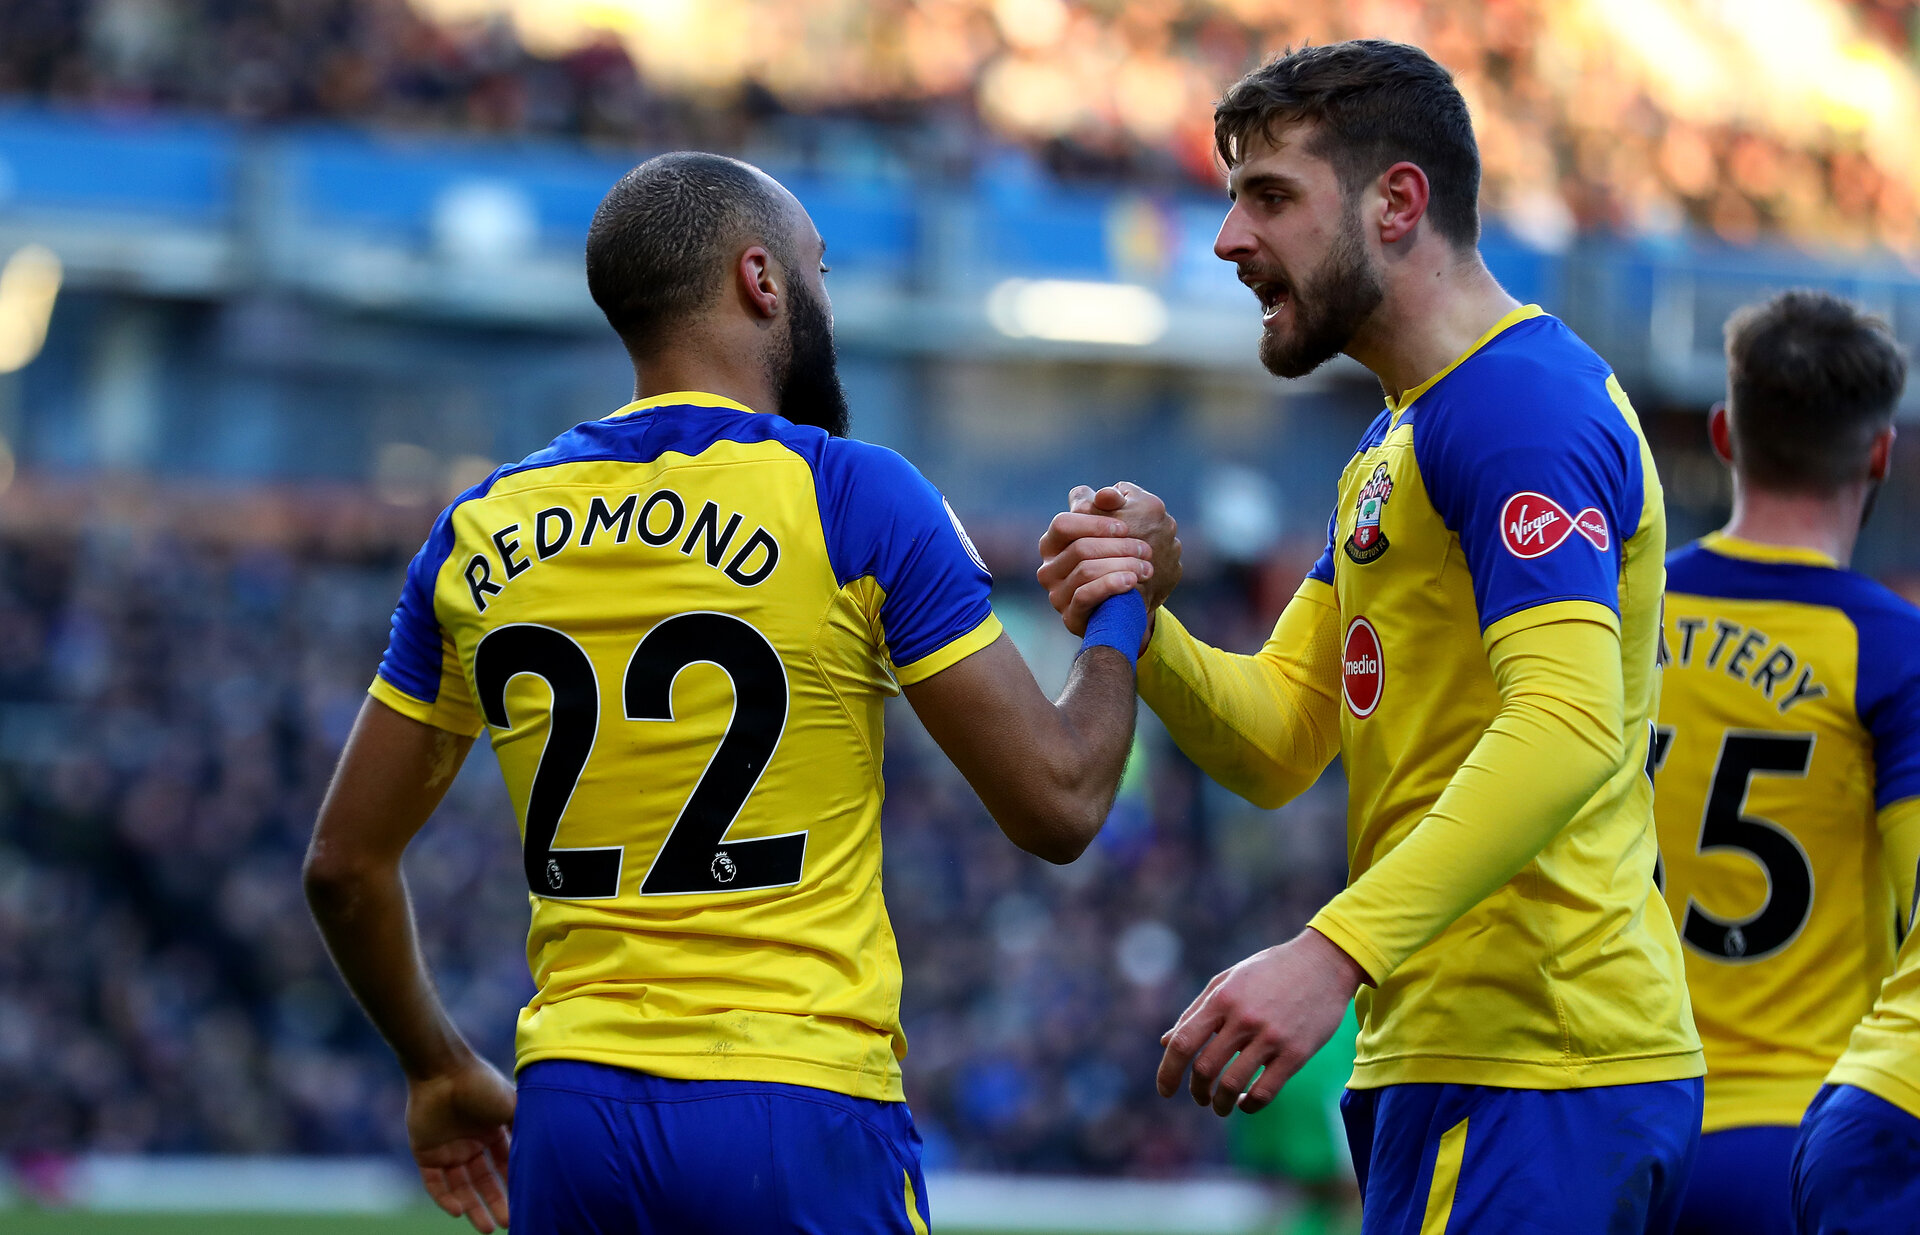 BURNLEY, ENGLAND - FEBRUARY 02: Nathan Redmond of Southampton celebrates with Jack Stephens during the Premier League match between Burnley FC and Southampton FC at Turf Moor on February 02, 2019 in Burnley, United Kingdom. (Photo by Matt Watson/Southampton FC via Getty Images)